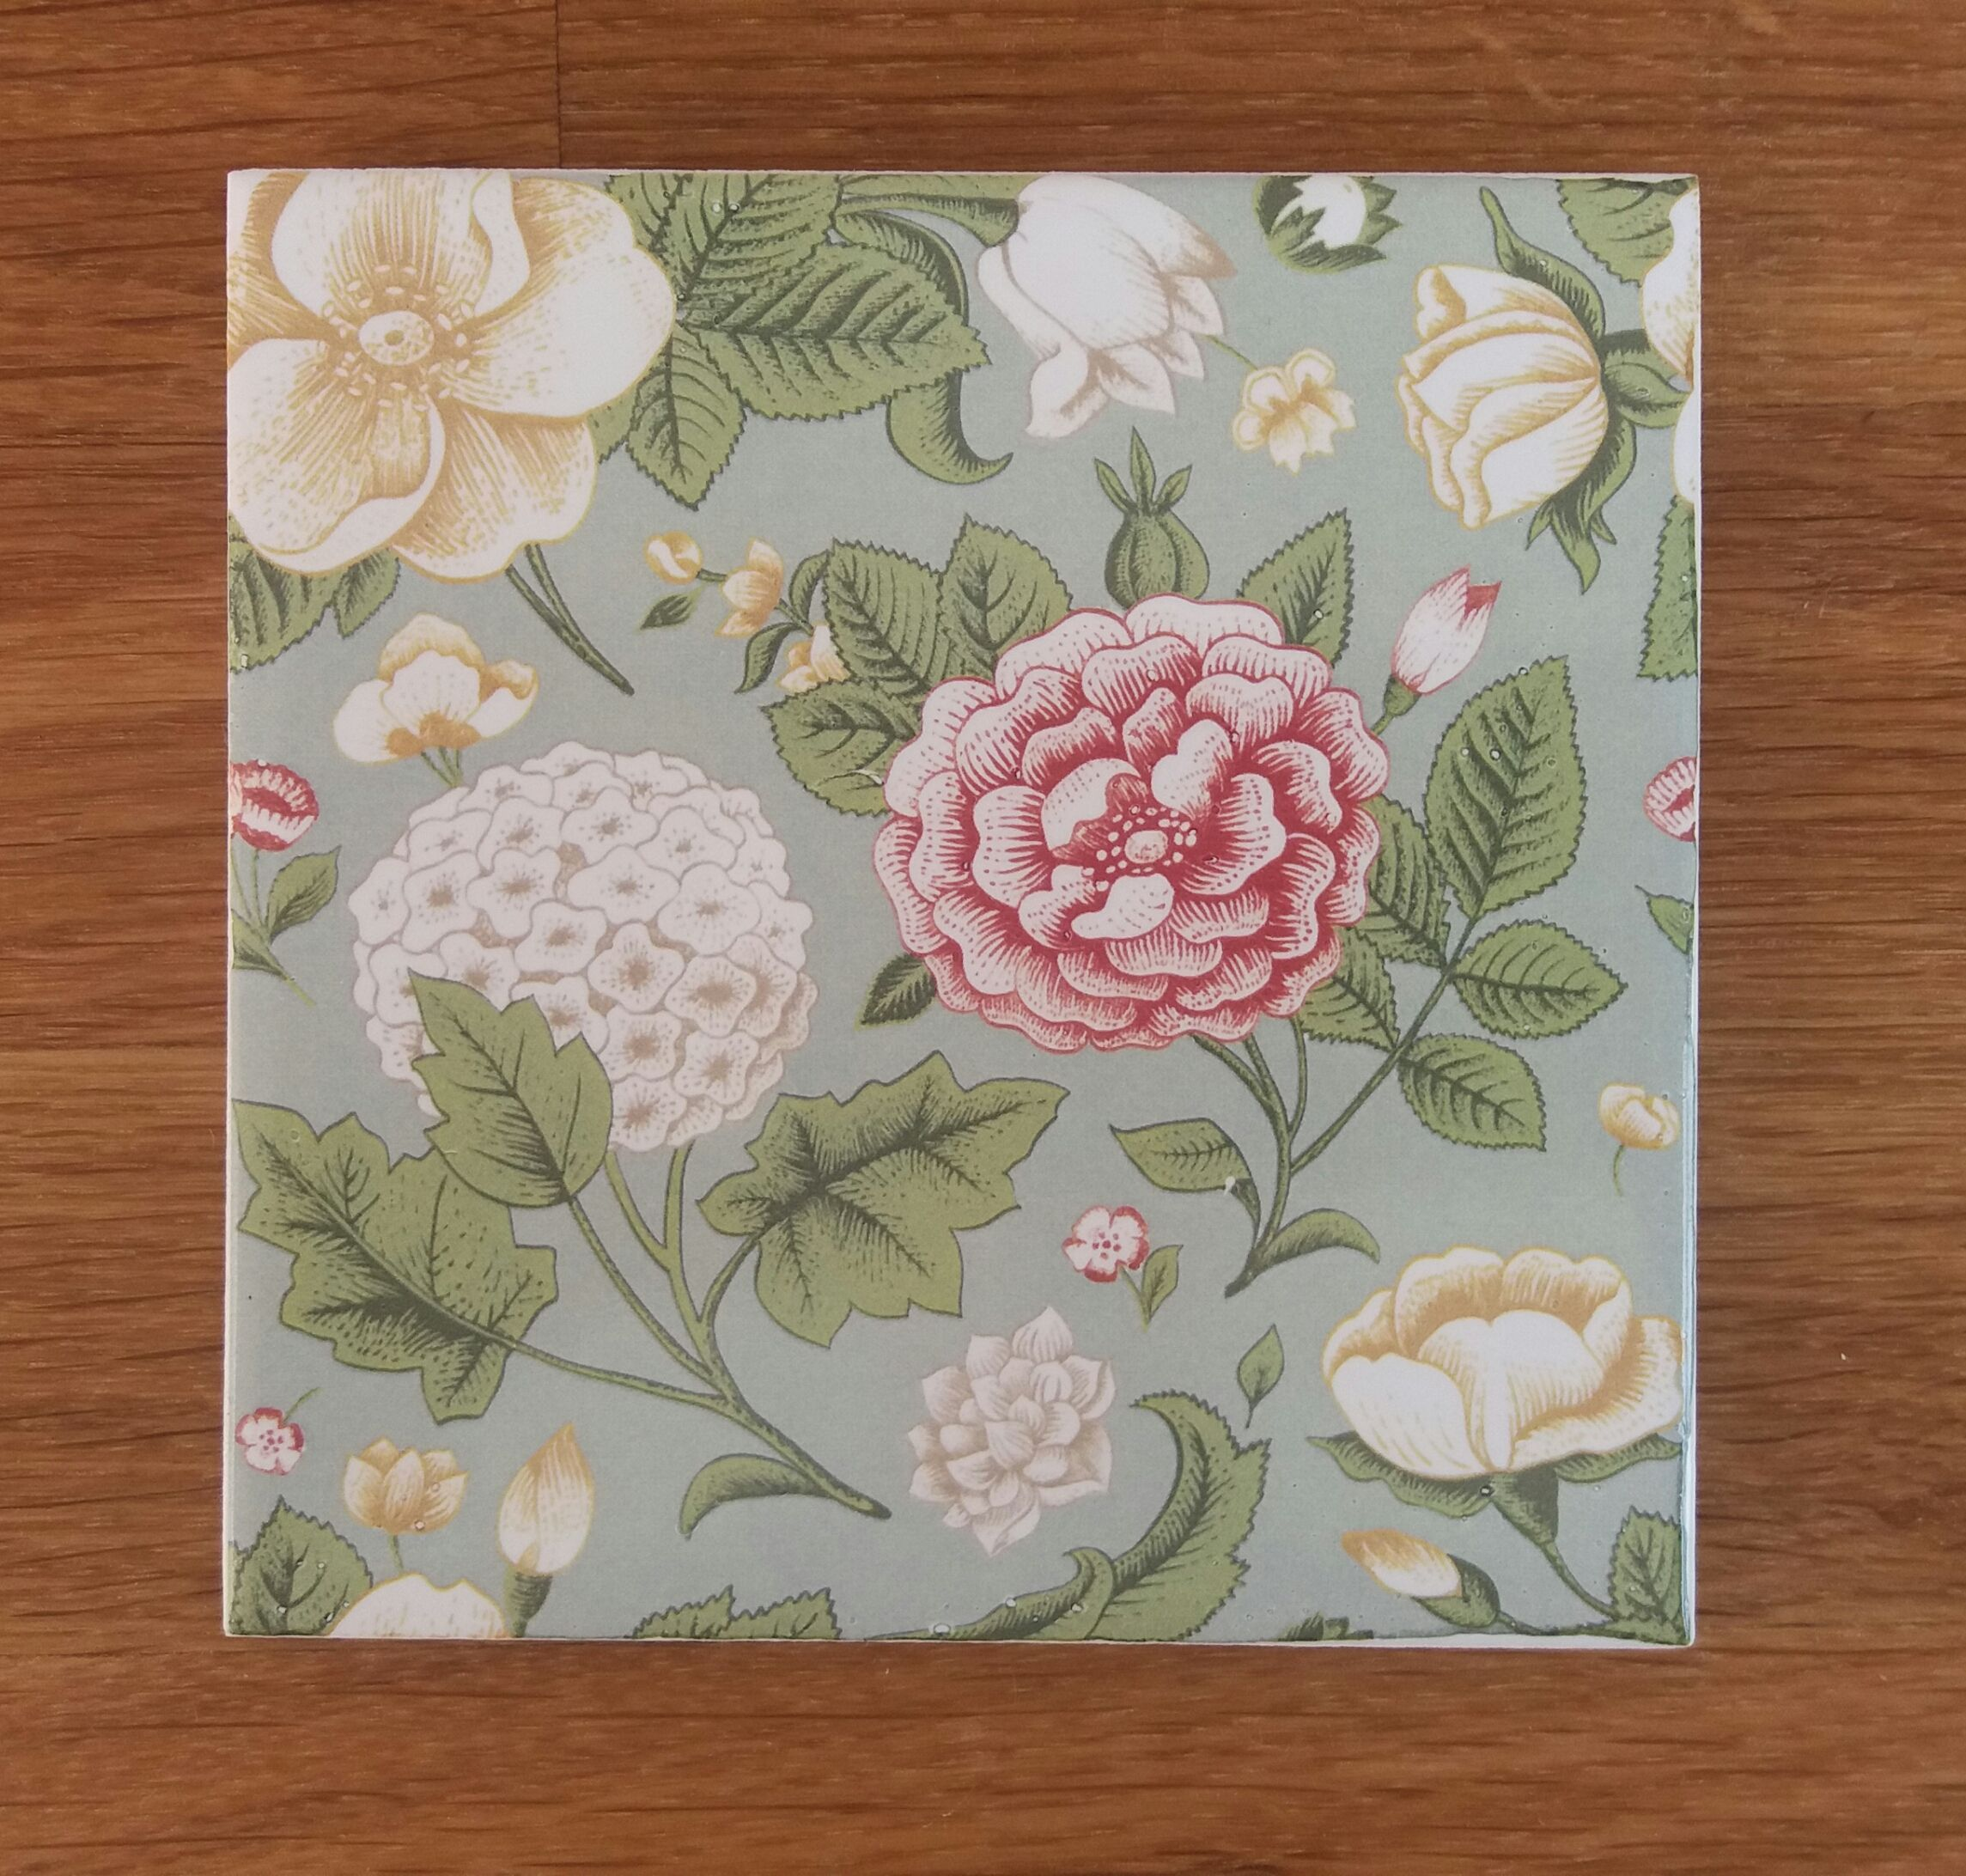 Vintage Style Floral Patterned Ceramic Wall Tile Ceramic Wall